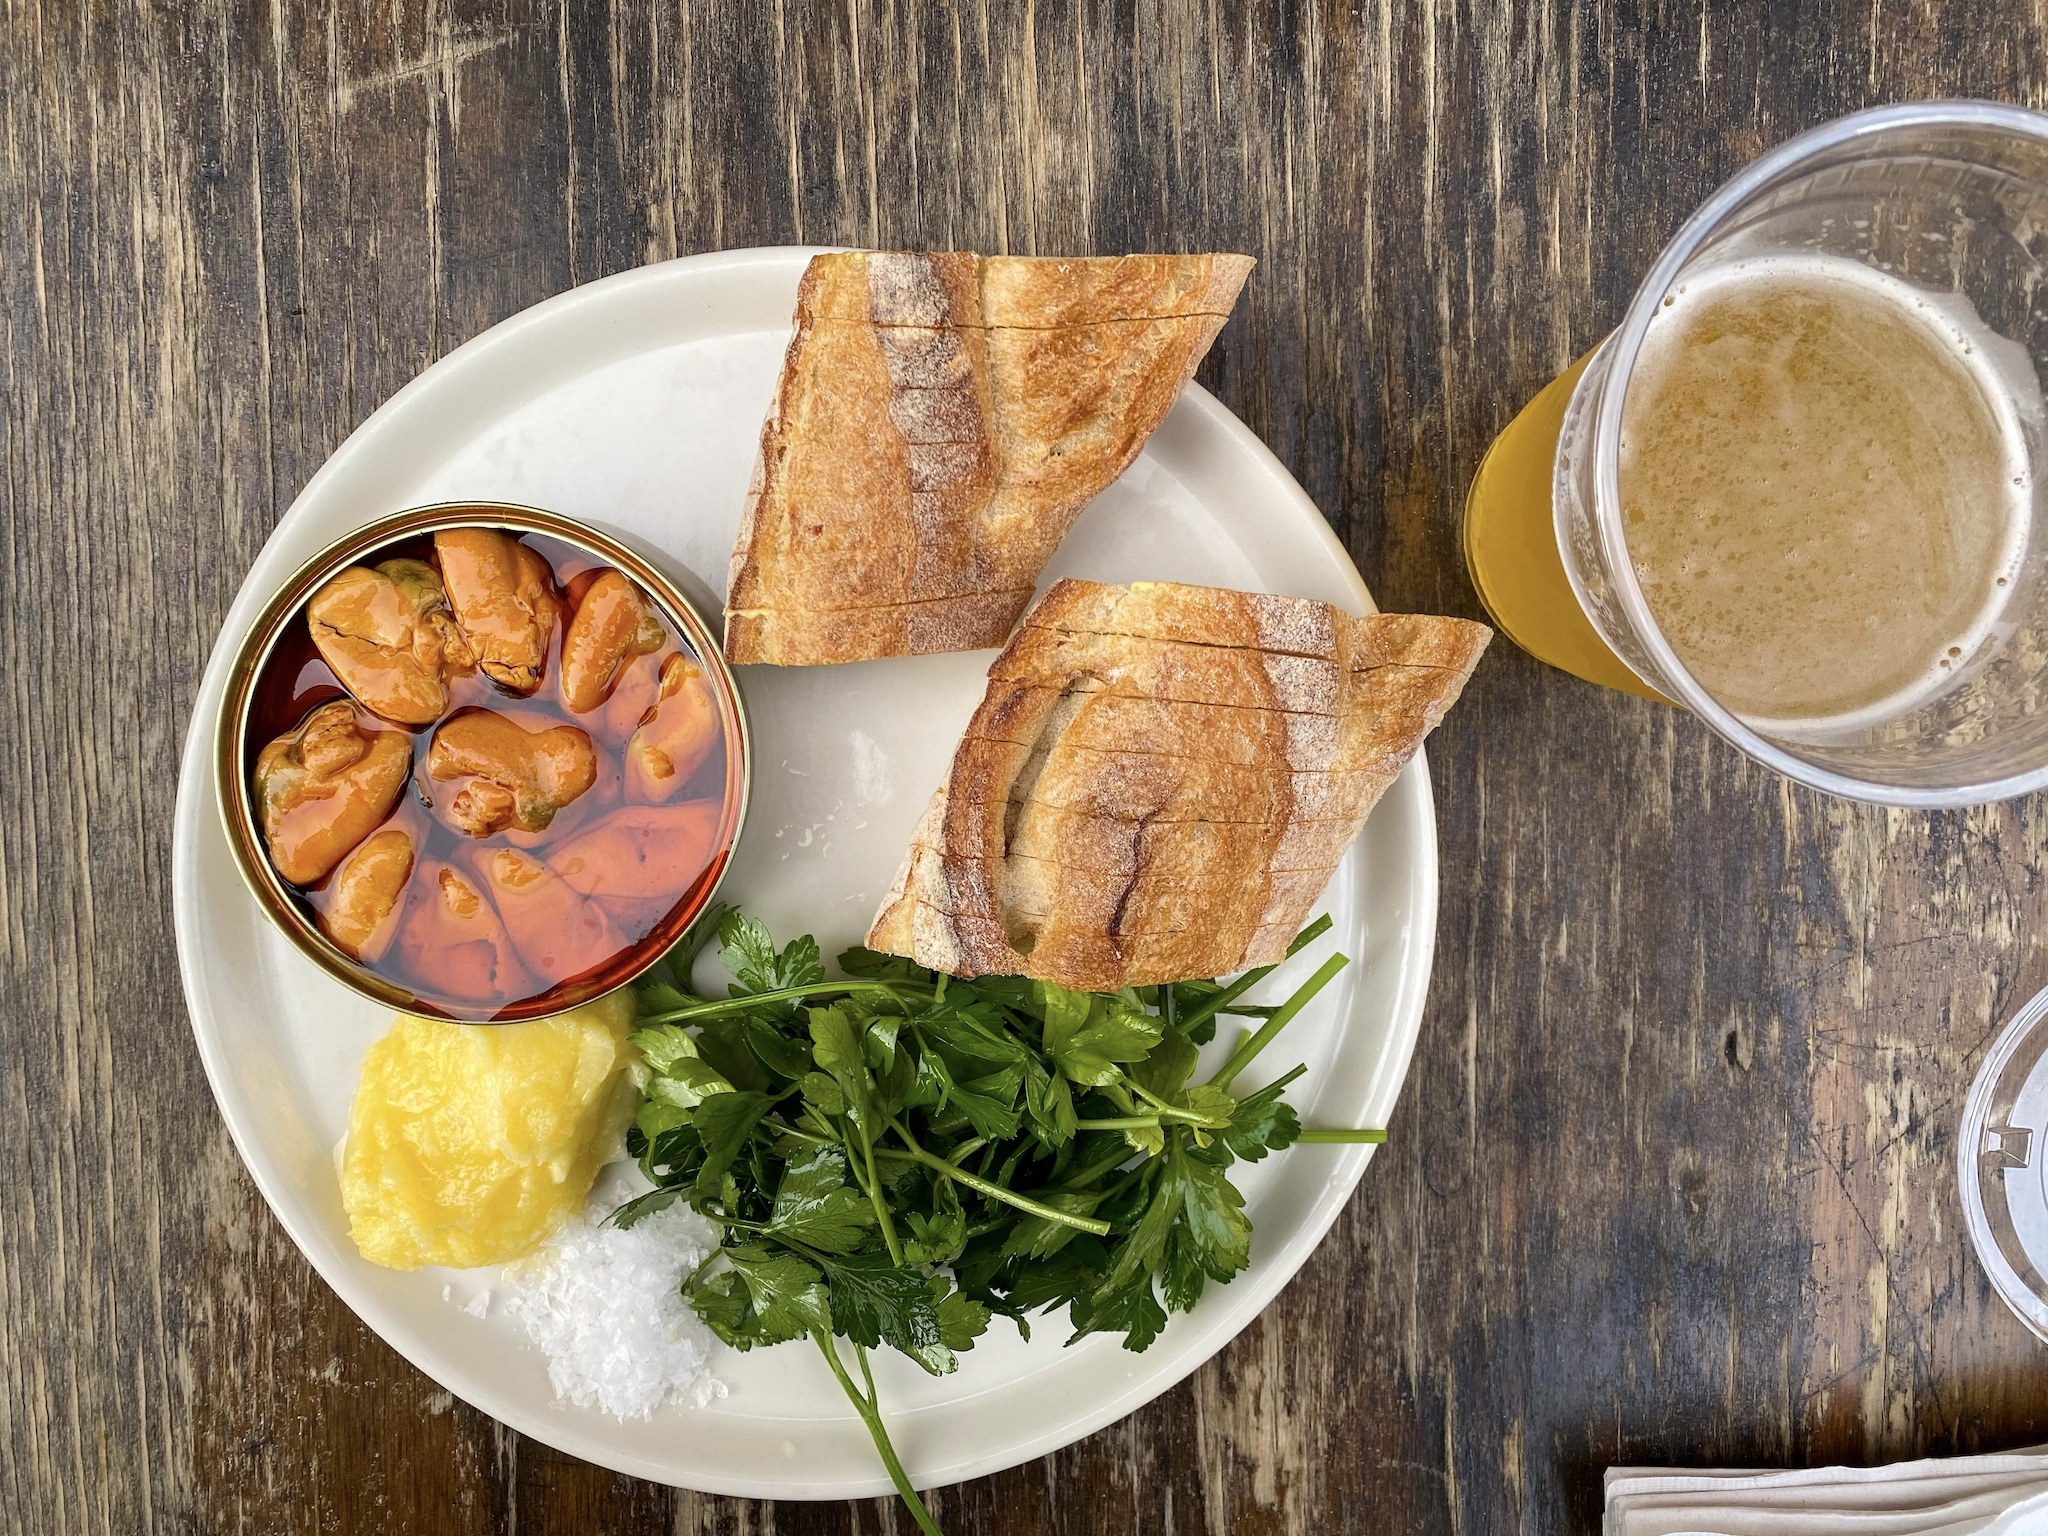 A plate with tinned fish served with a baguette, greens, salt, and butter with a cup of beer on the side.